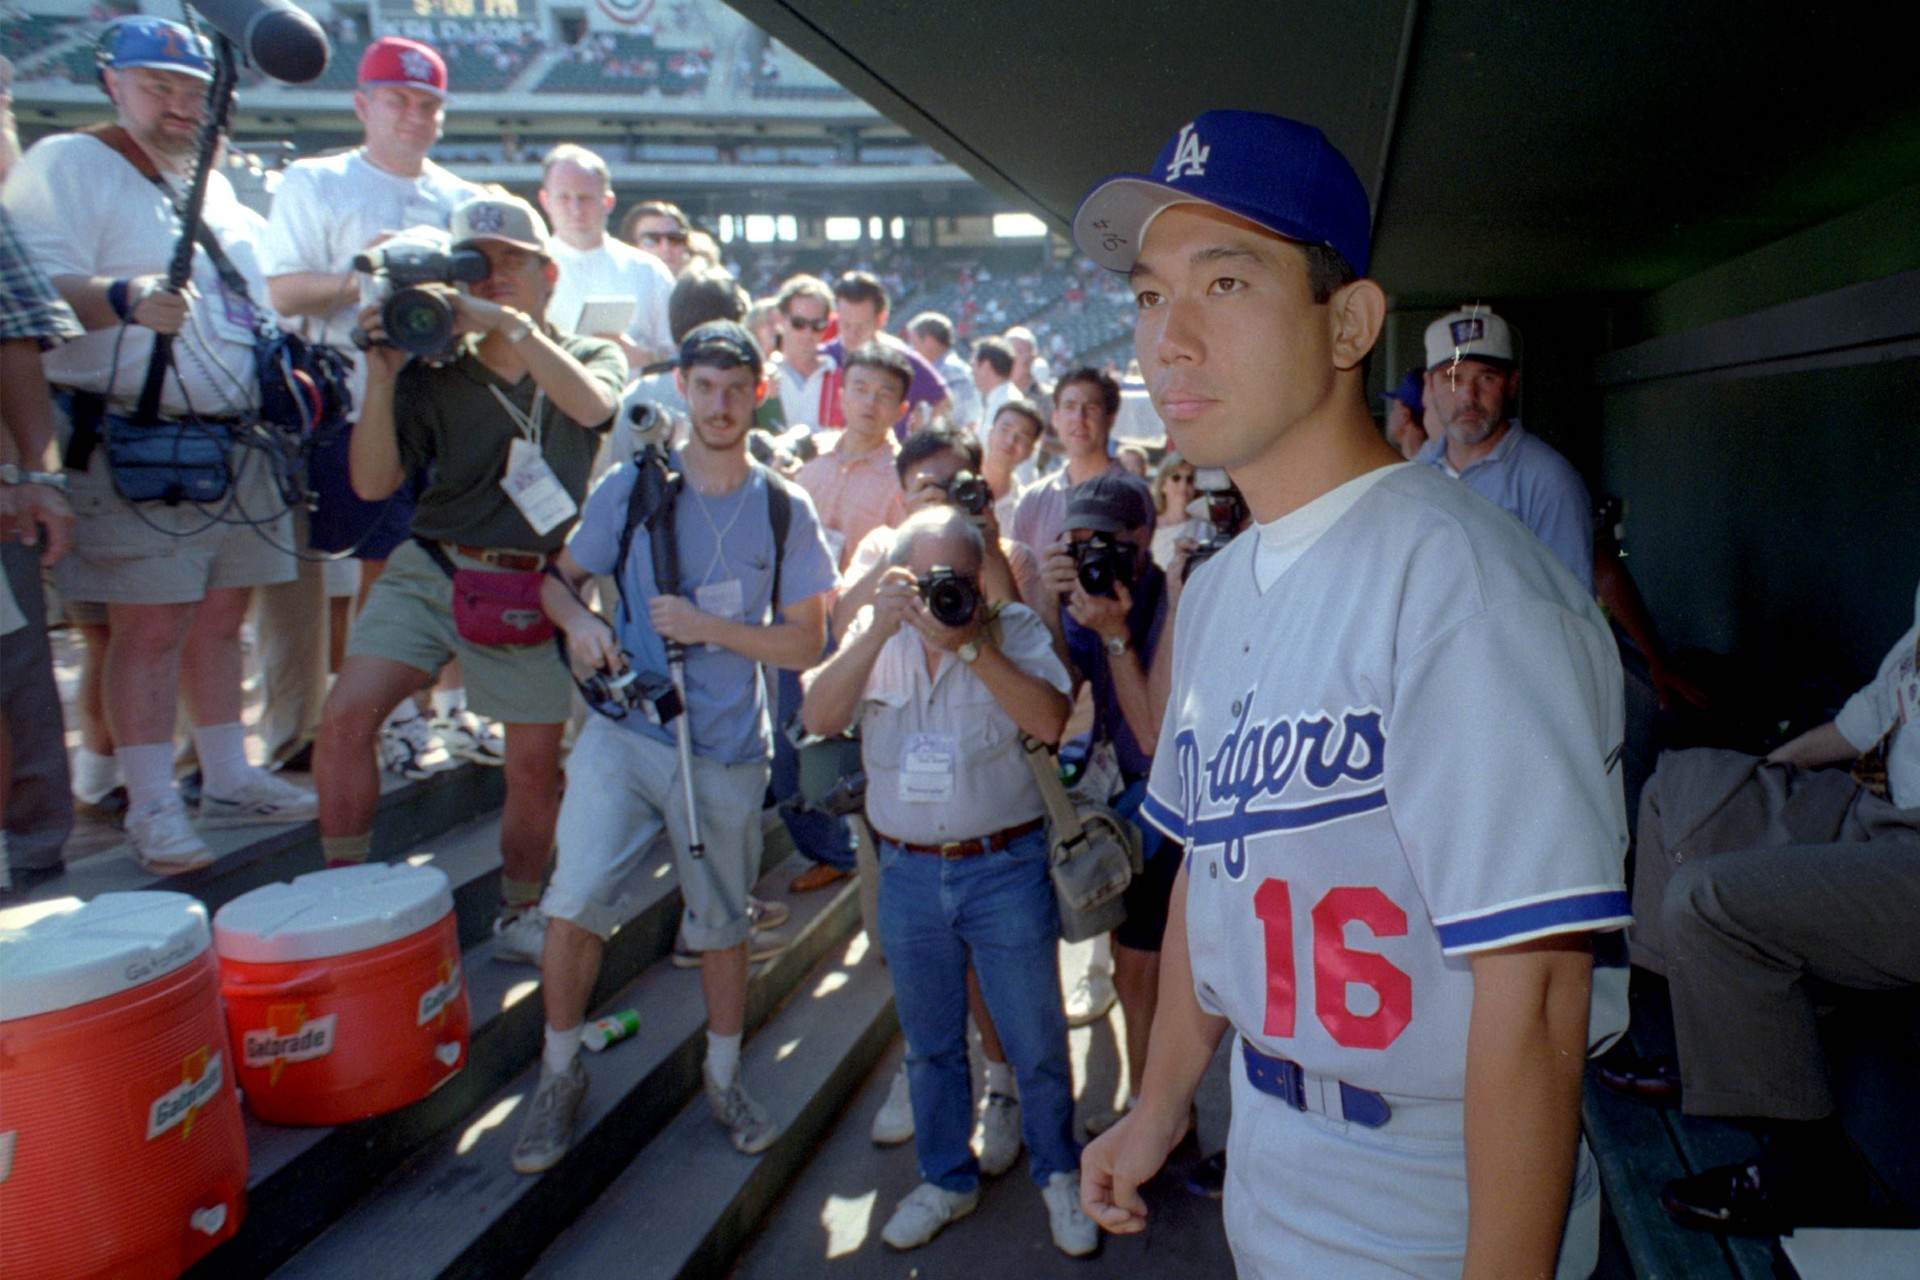 Hideo Nomo of the Los Angeles Dodgers became the first Japanese-born player to appear in an All-Star game in 1995.